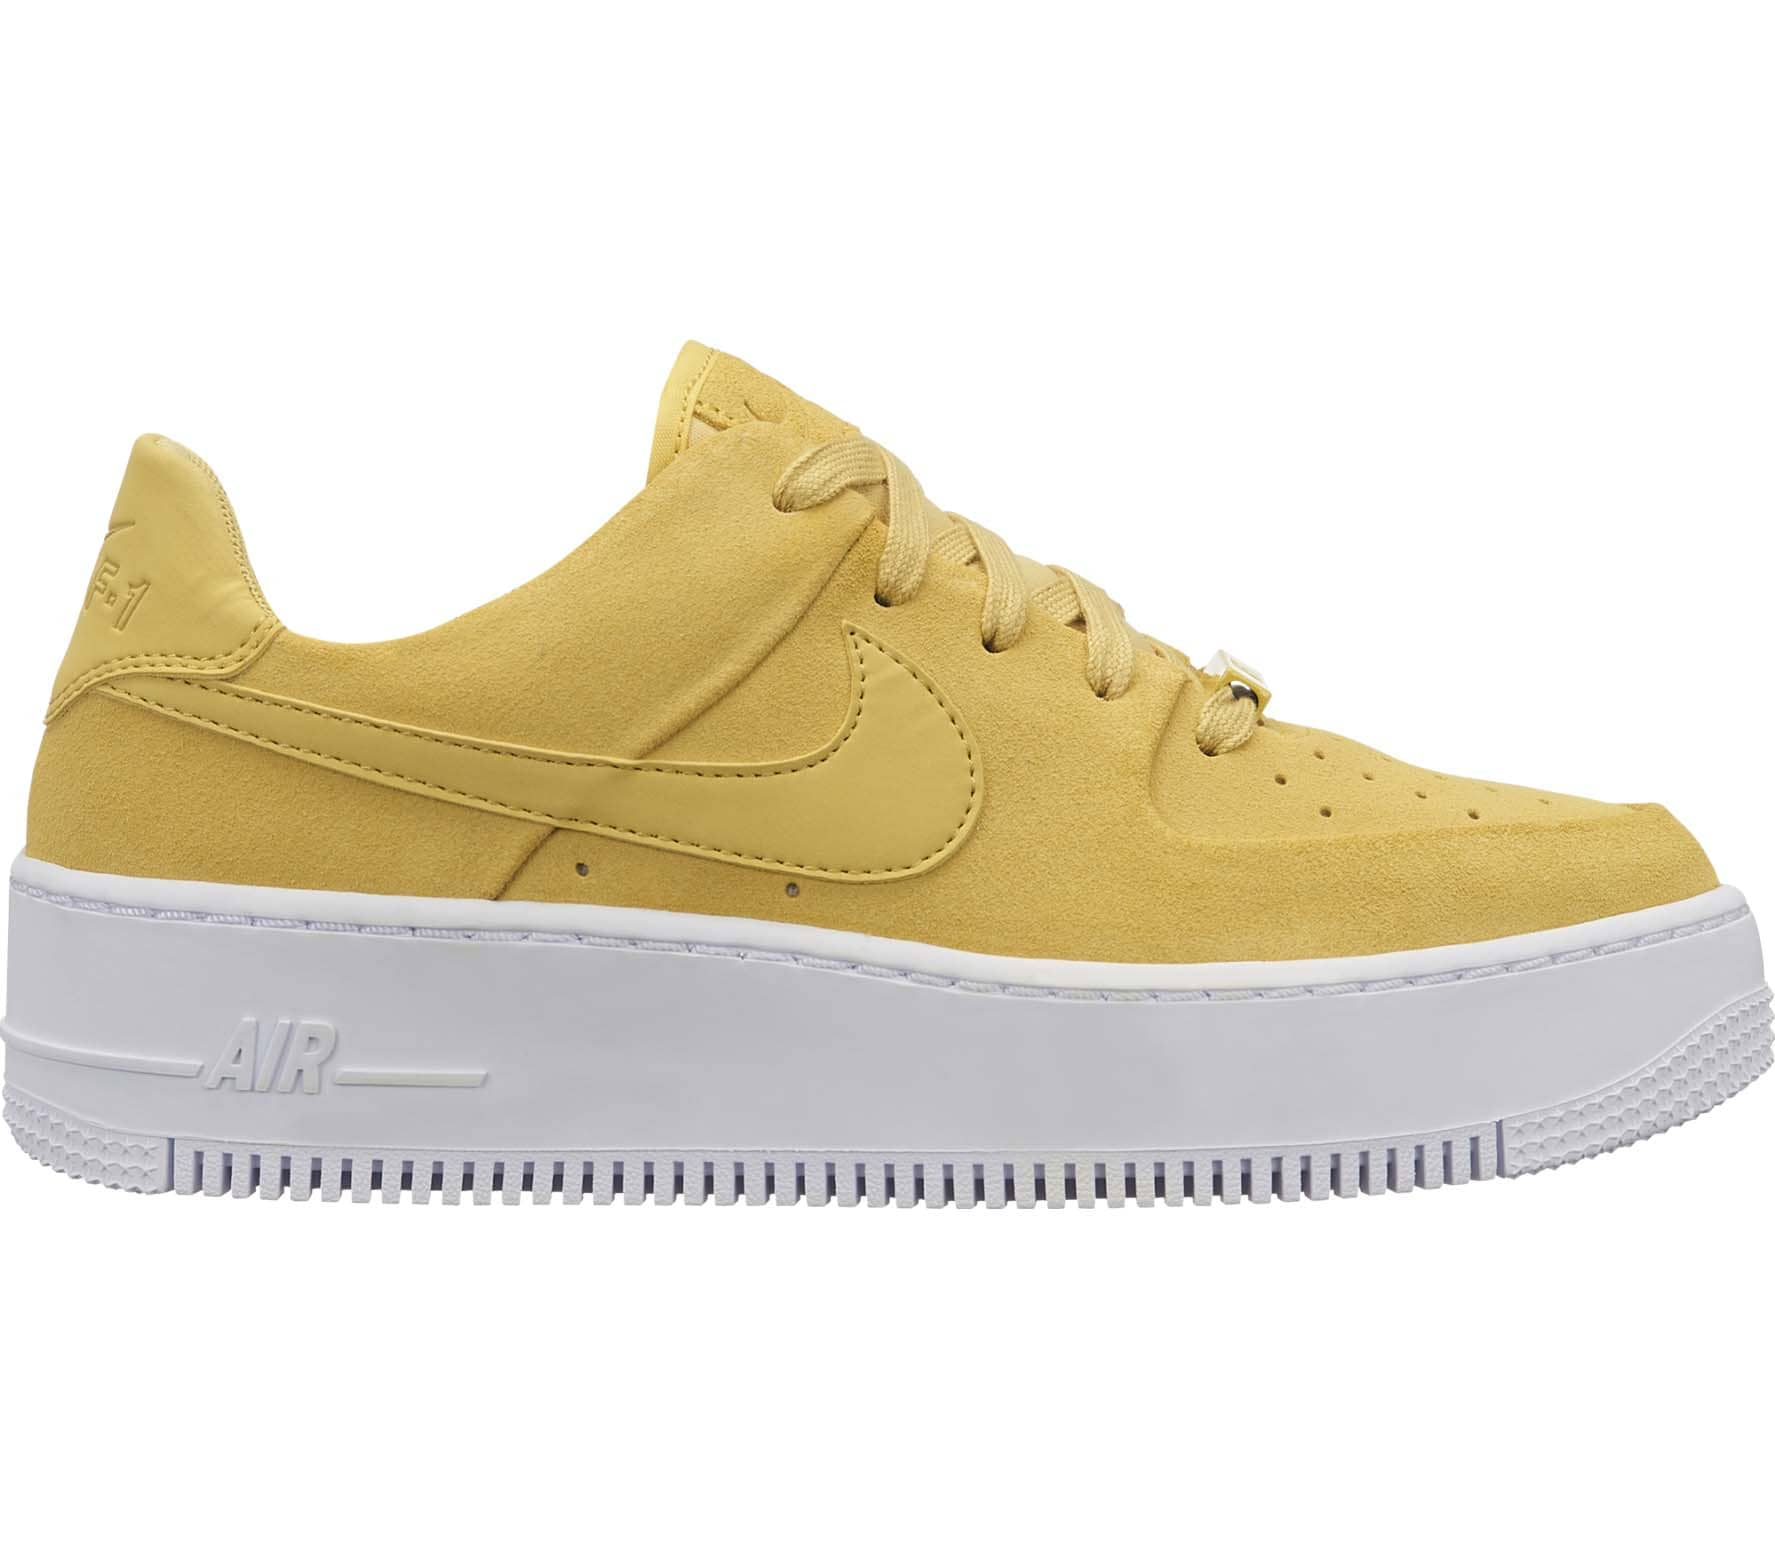 0c57e6693 Nike Sportswear Air Force 1 Sage Low women s trainers (yellow ...